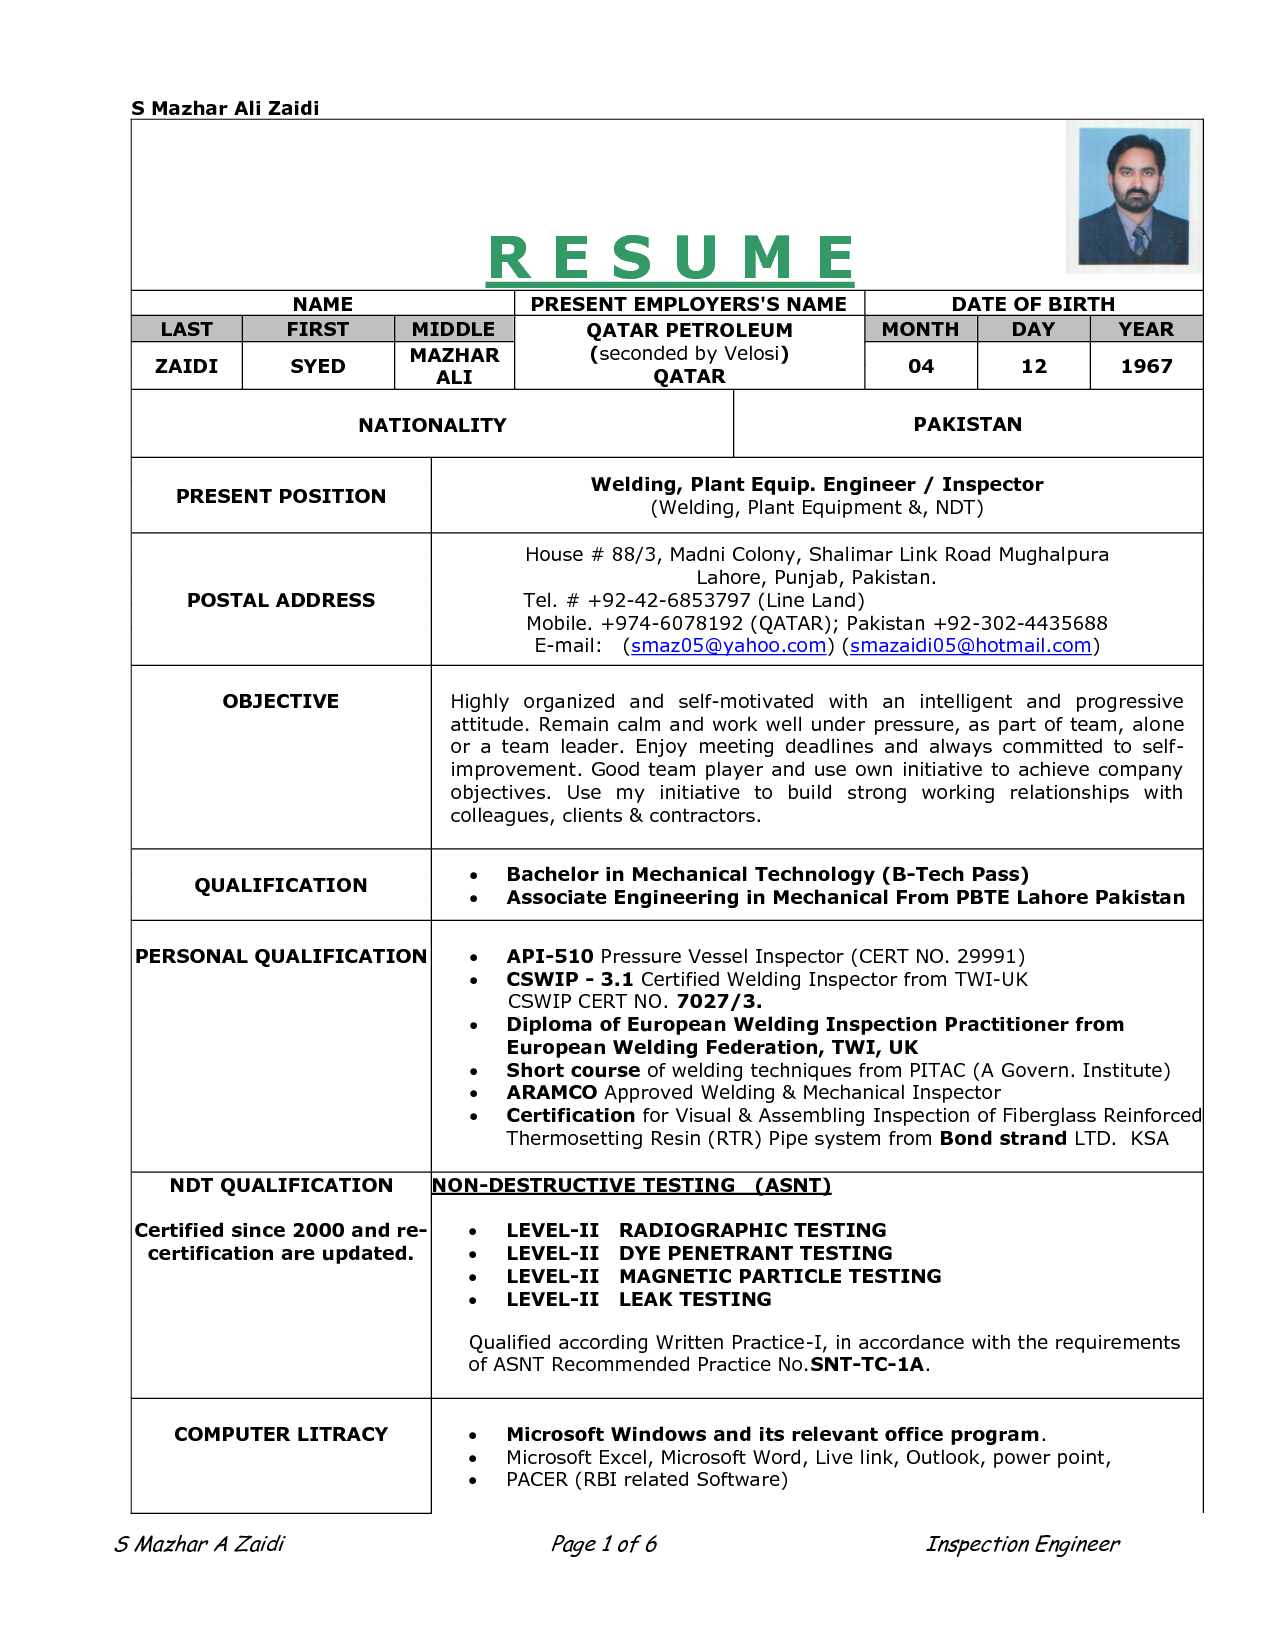 re work procedure resume doc download legal documents re work procedure resume document sample